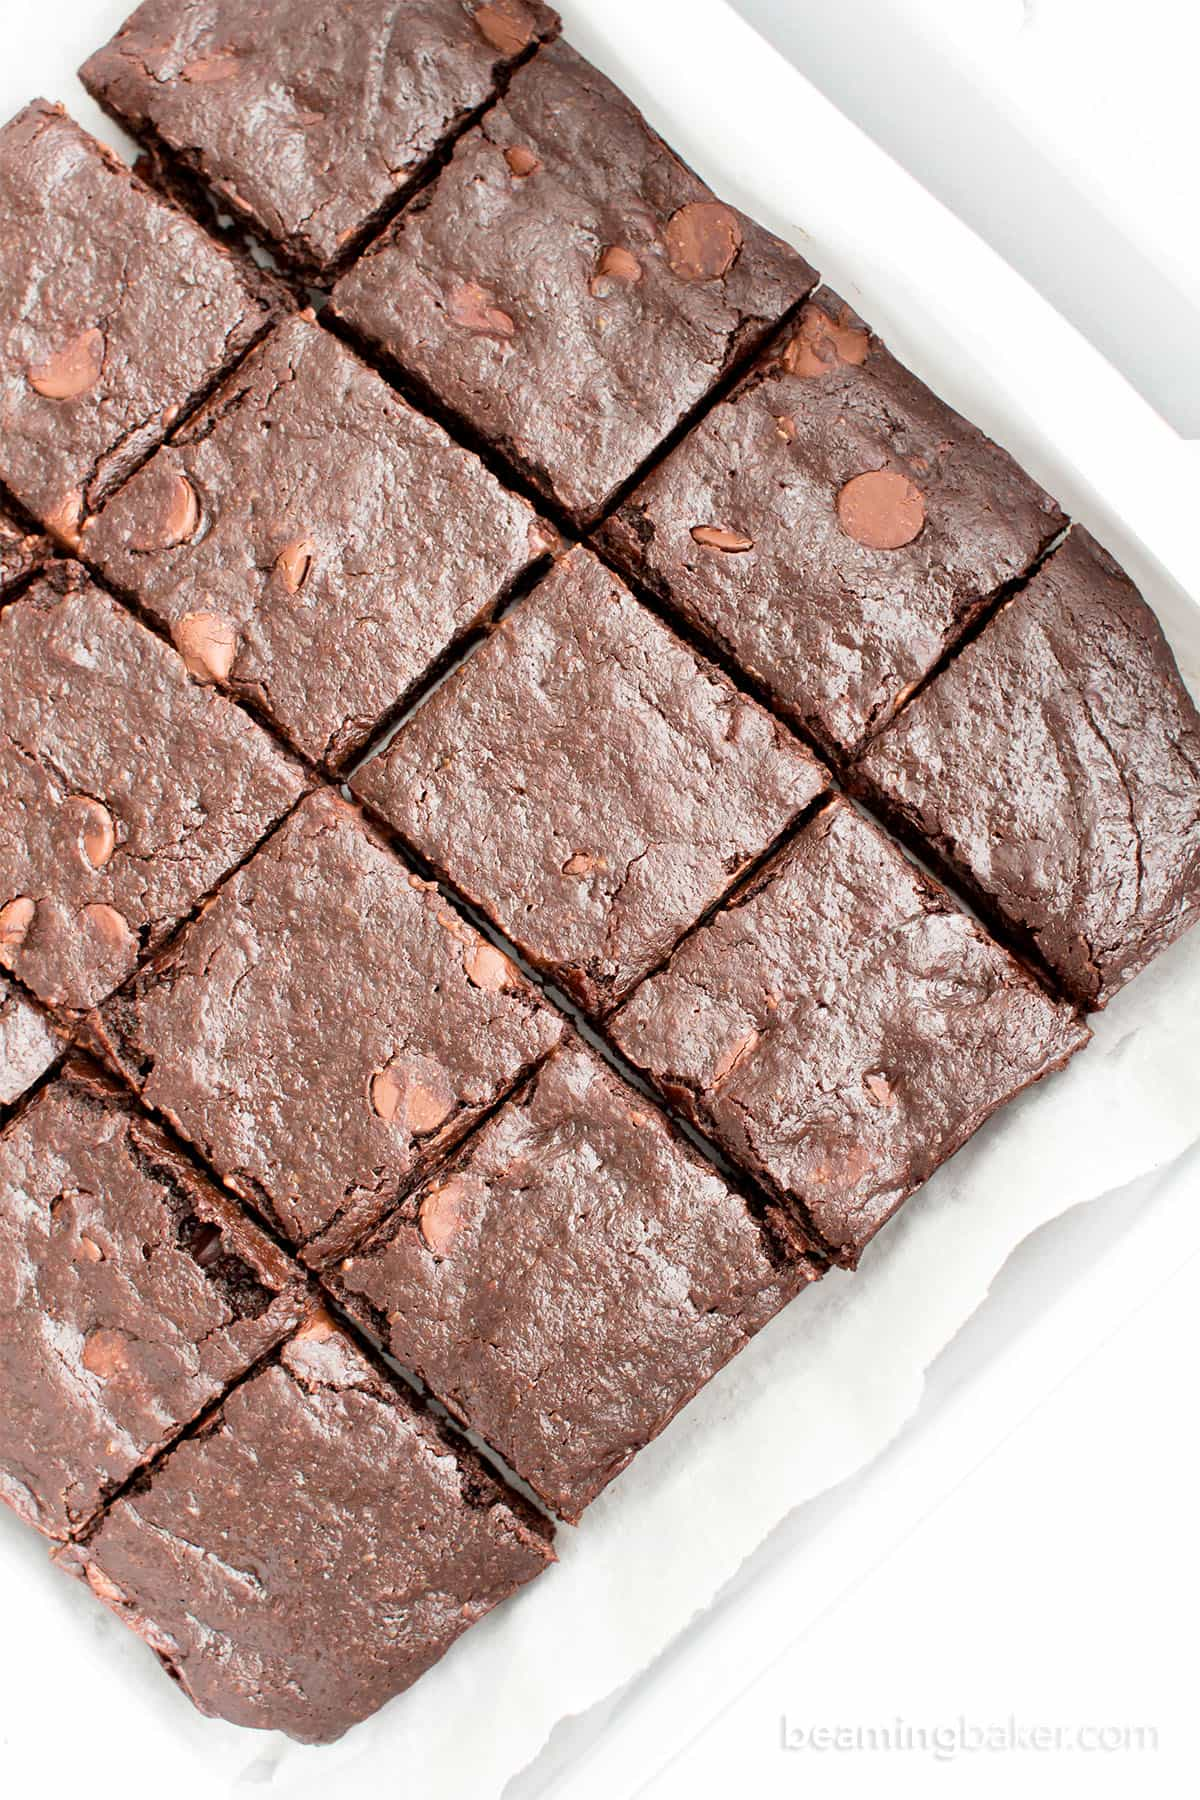 Ultimate Fudgy Paleo Vegan Brownies (V, GF, DF): an easy, one bowl recipe for seriously fudgy, super moist paleo brownies bursting with rich chocolate flavor. #Vegan #GlutenFree #DairyFree | BeamingBaker.com